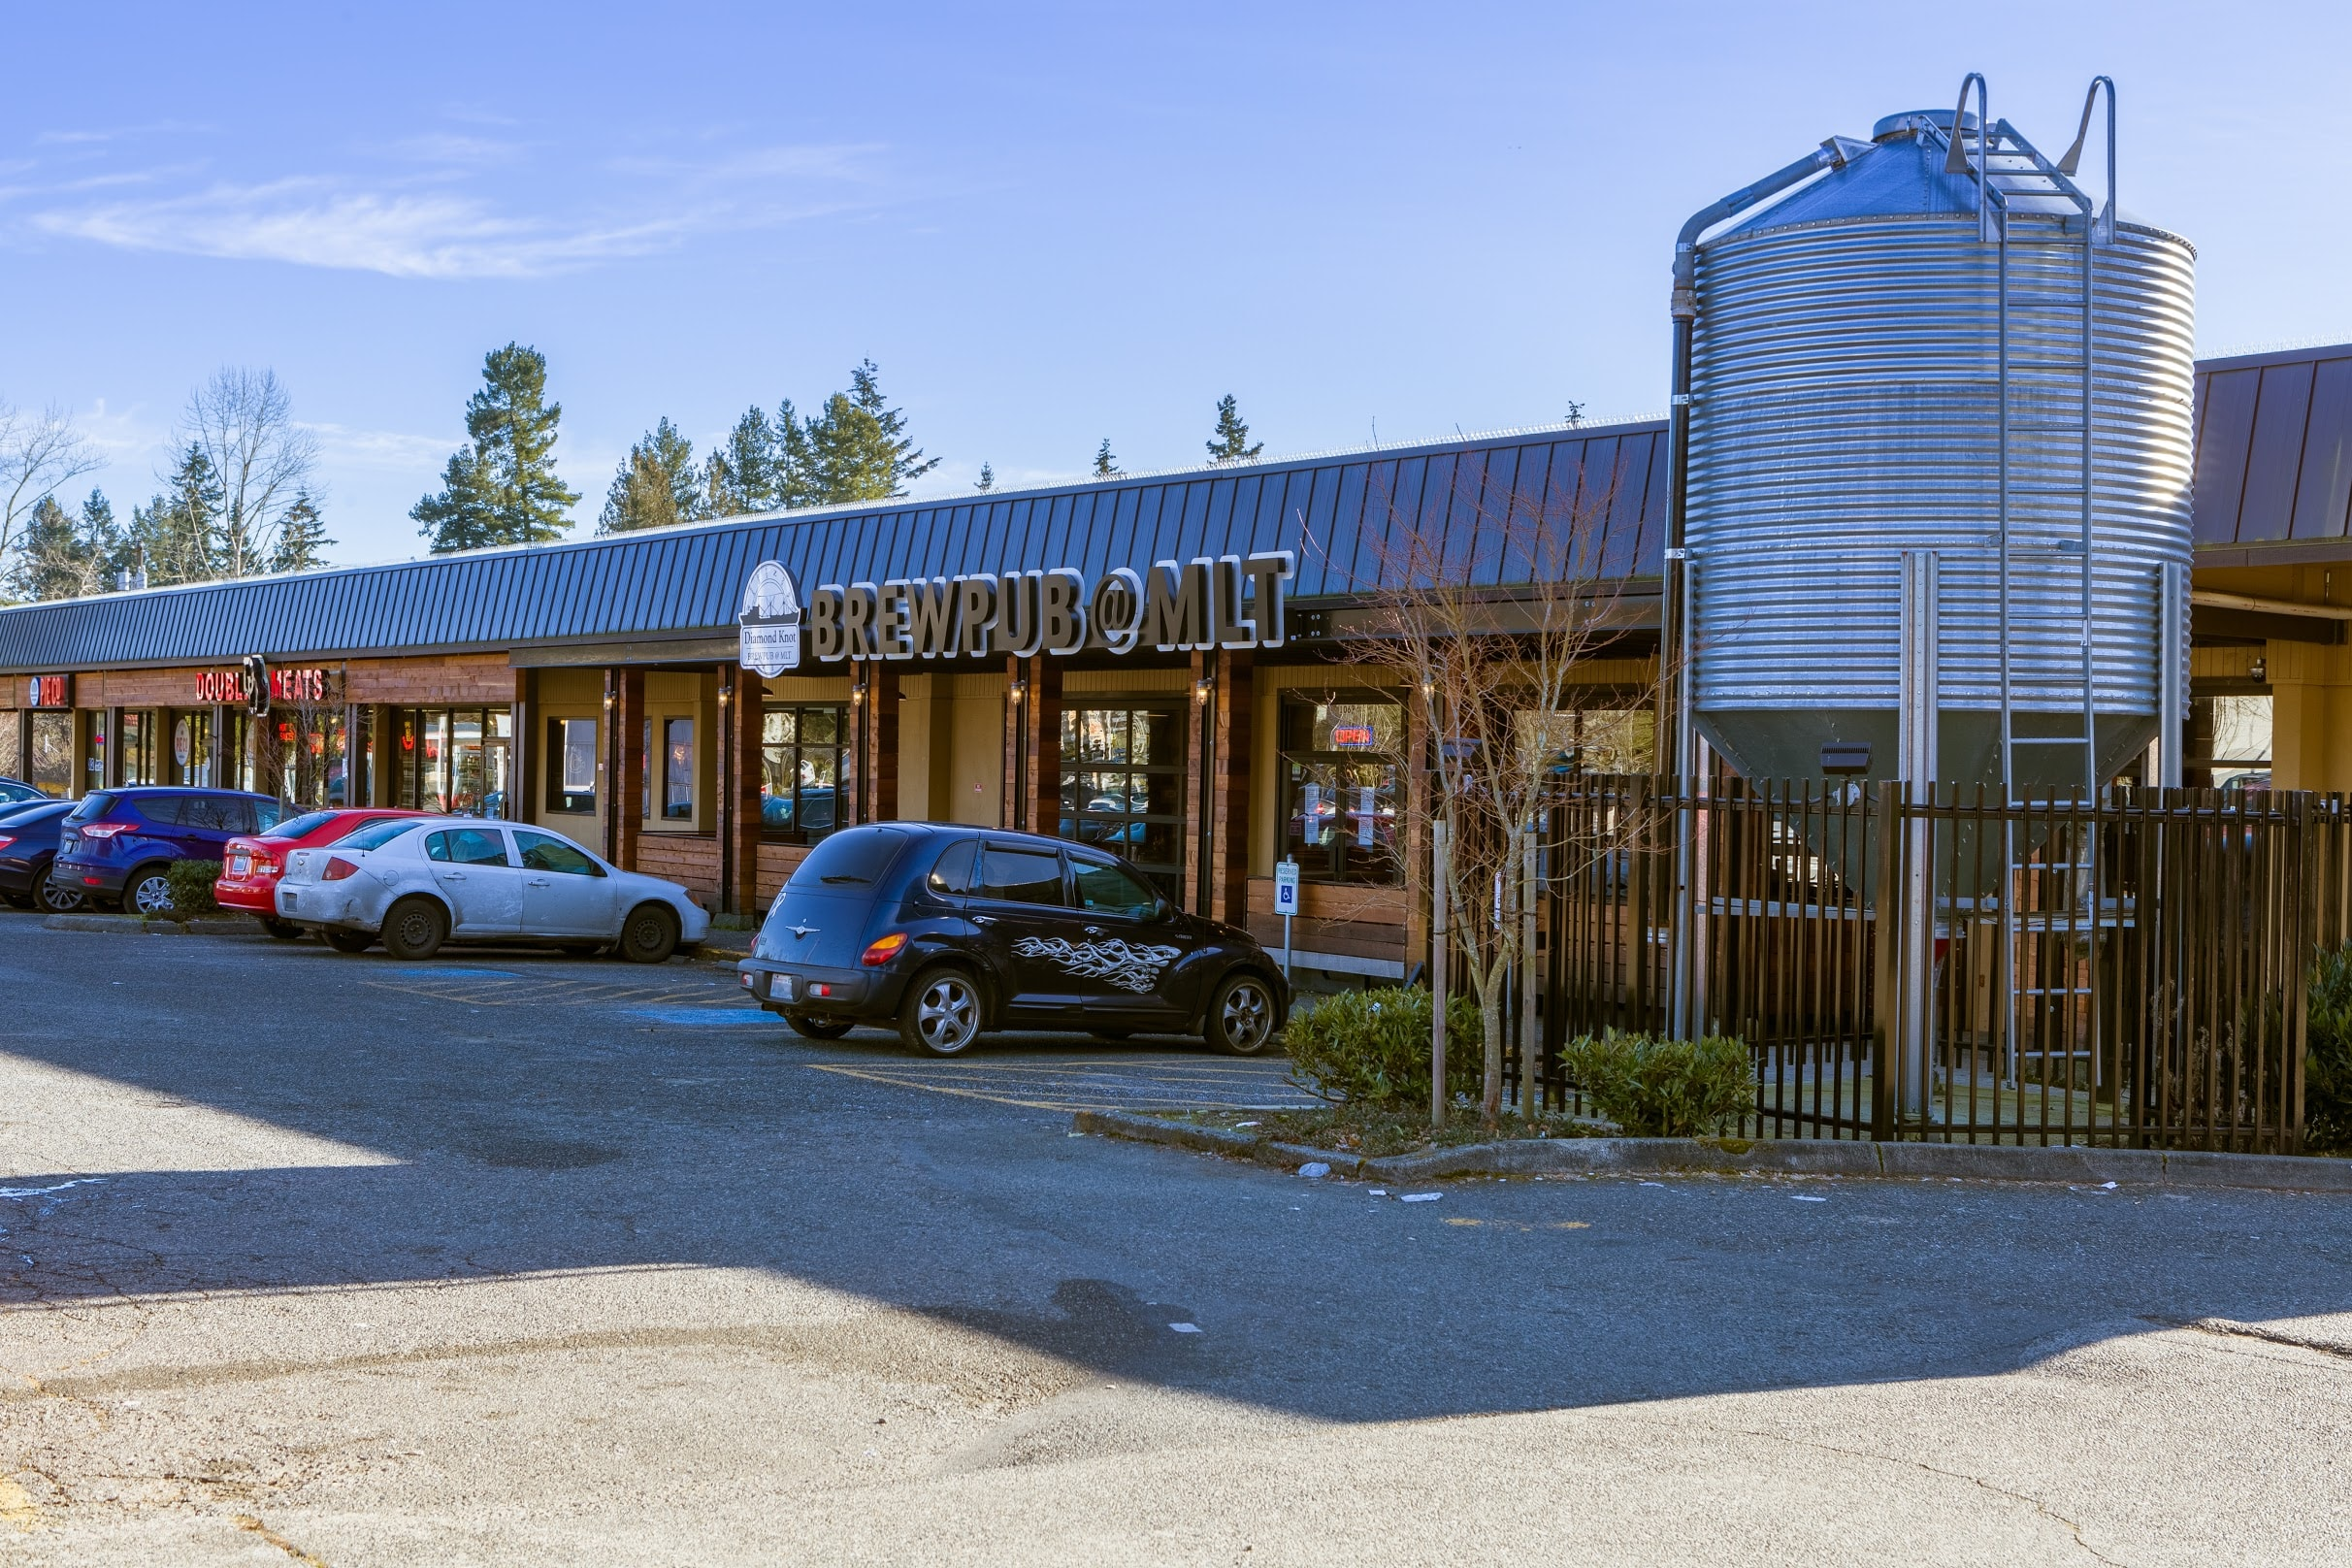 WindermereNorth_MountlakeTerrace_BrewpubatMLT.jpg